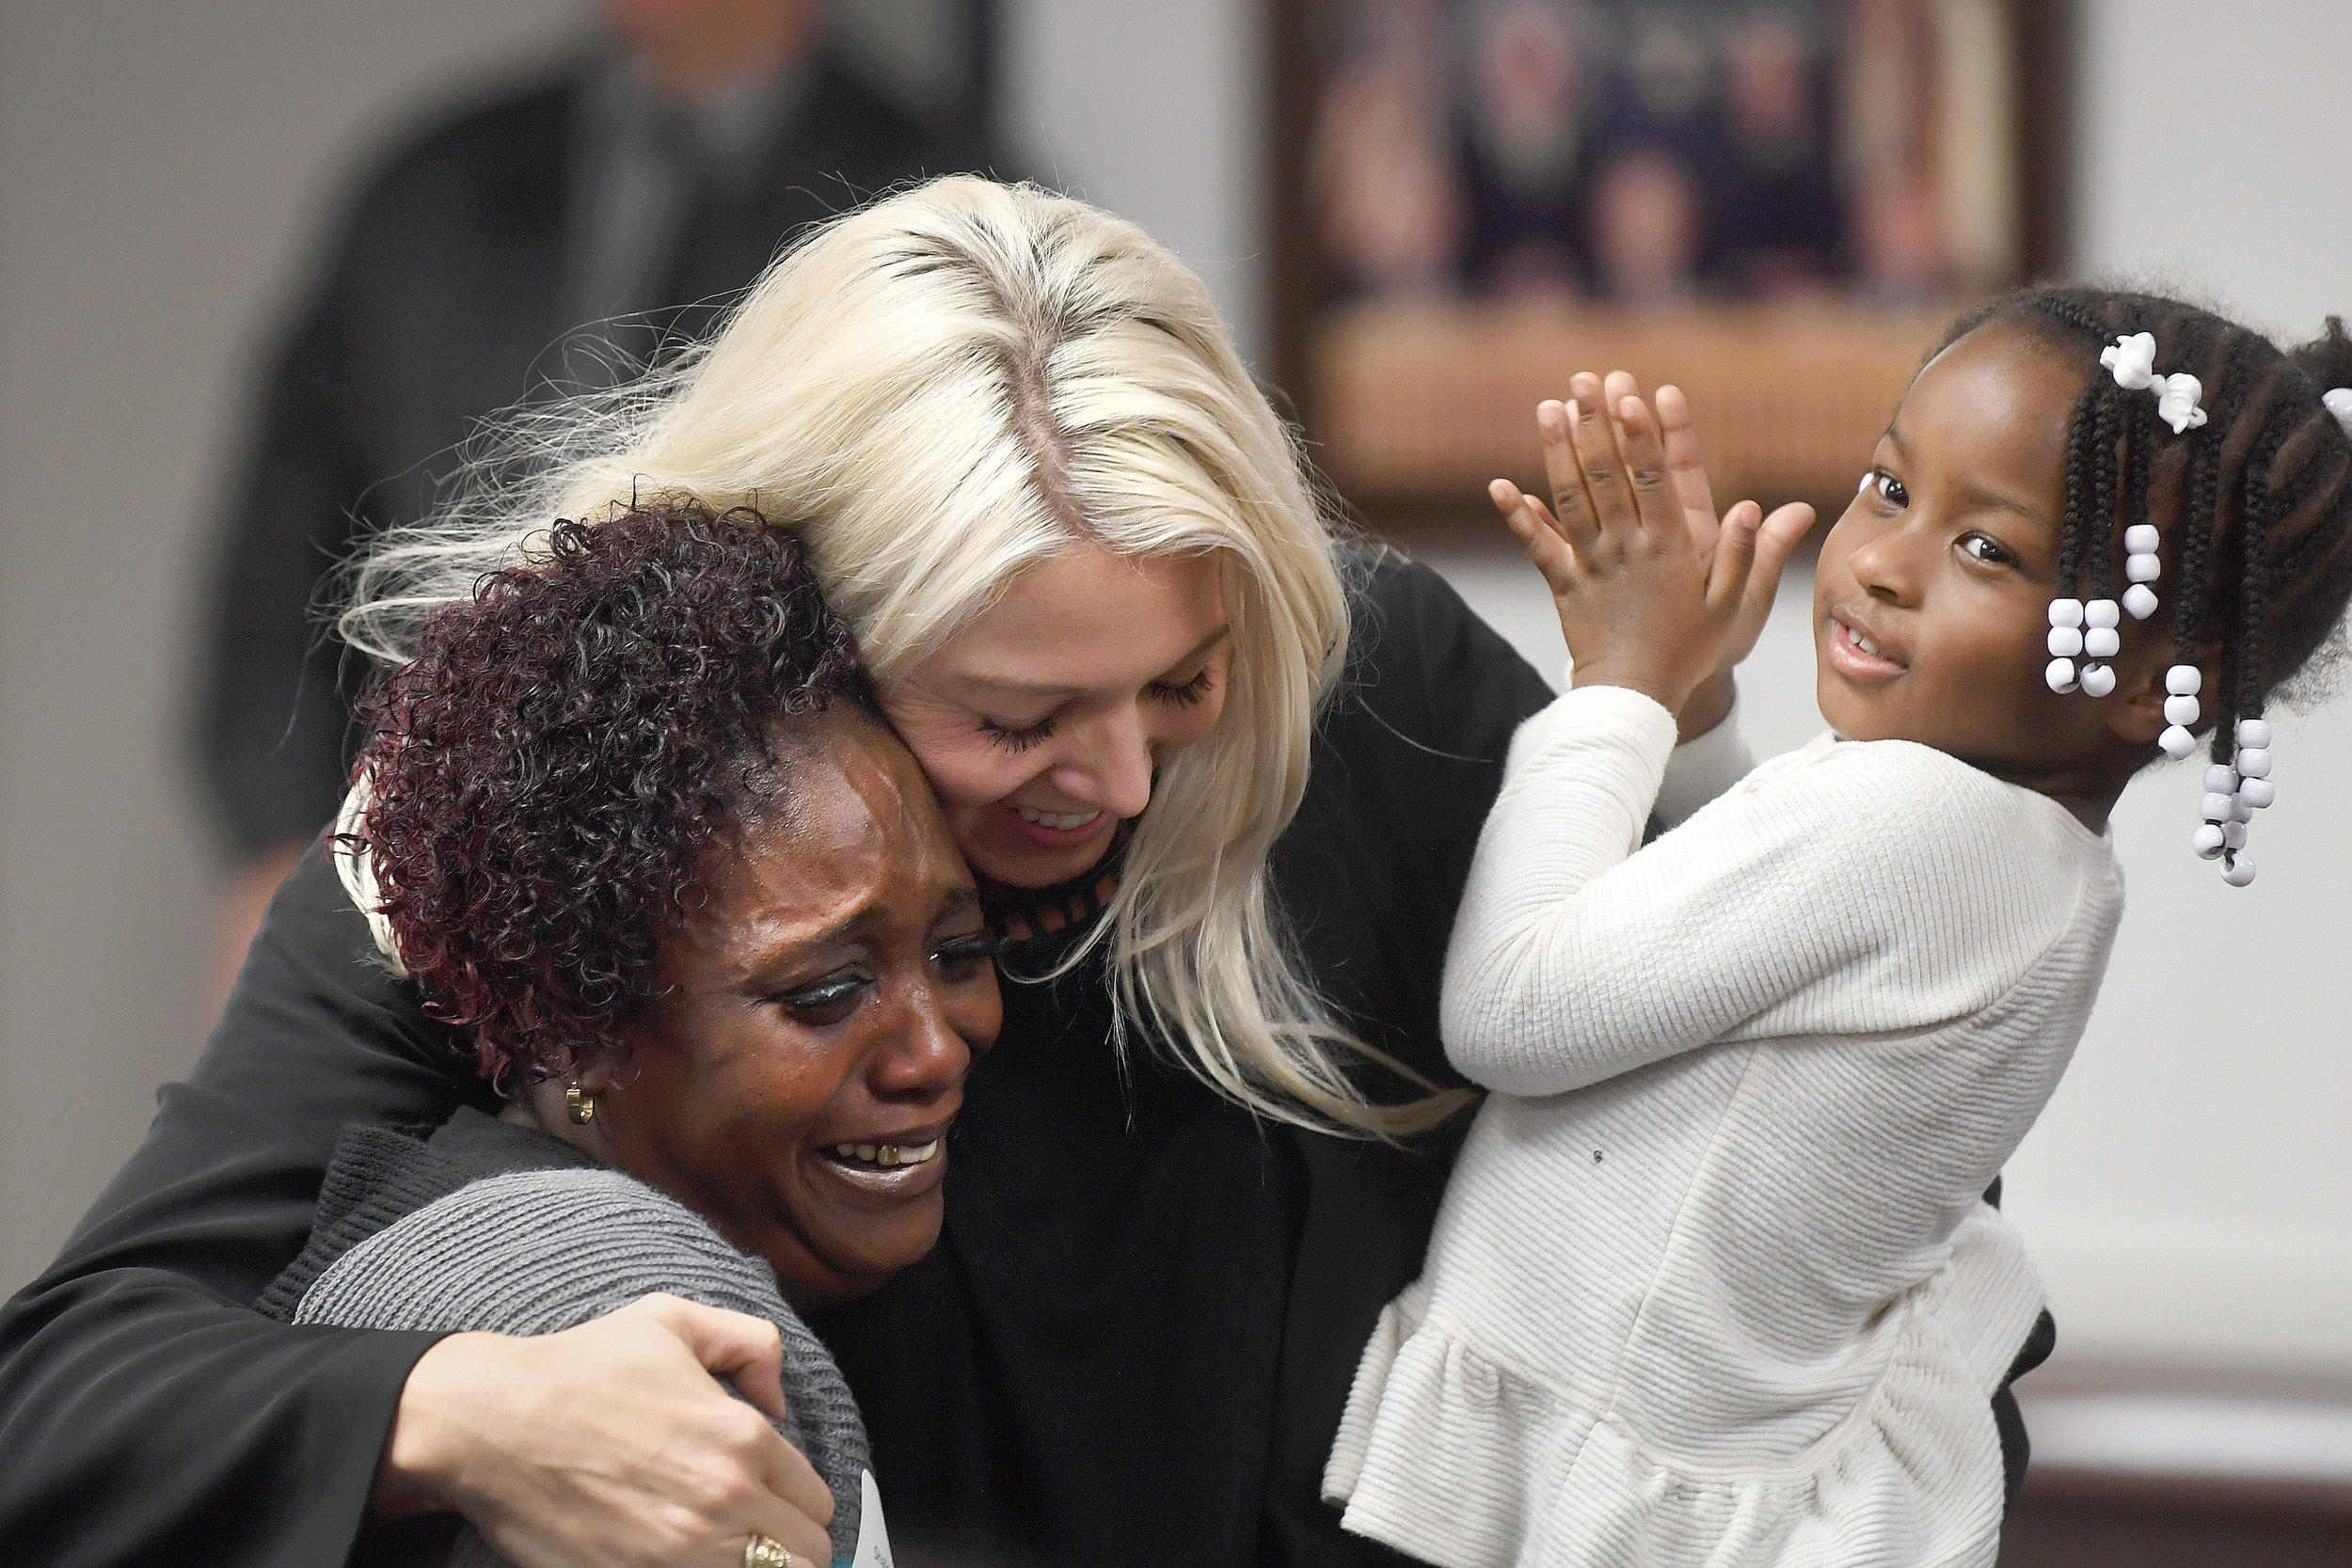 Shalonda Robinson, left, cries tears of joy while being hugged by attorney Amanda Buenger during Brazos Valley Adoption Day on Wednesday, Nov. 14, 2018, in Bryan, Texas. Buenger is holding Robinson's three-year-old granddaughter, Ju'Torrah, one of four children Robinson adopted during Brazos Valley Adoption Day. (Laura McKenzie/The Eagle)